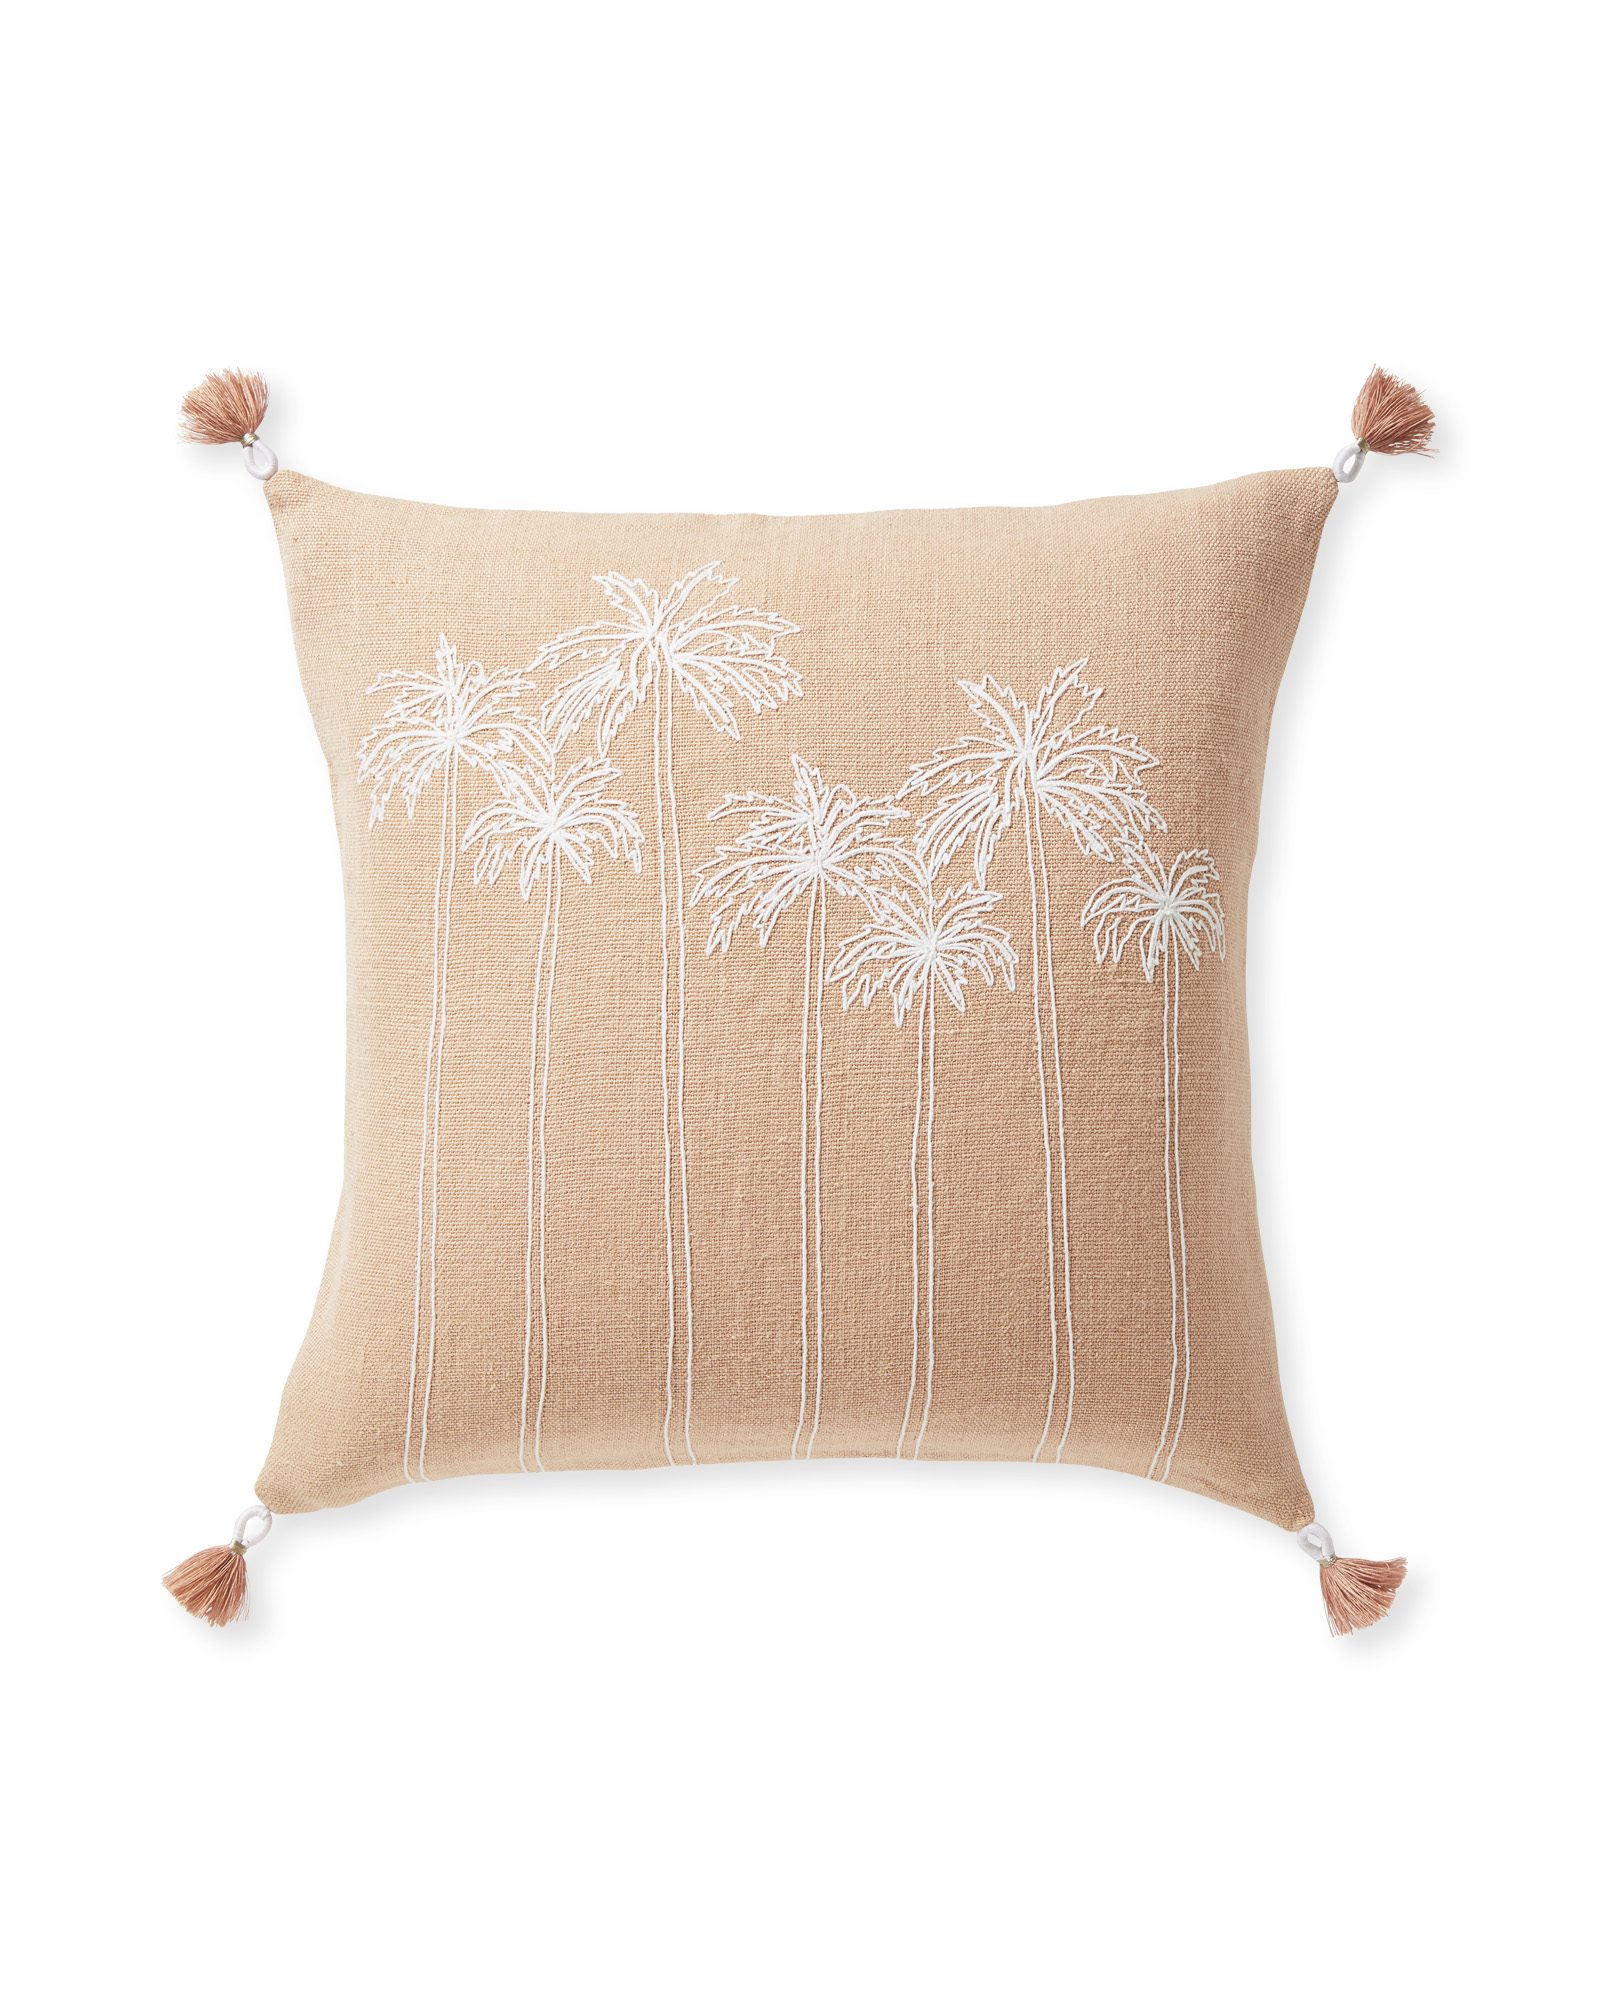 Seabreeze Pillow Cover, Wild Rose